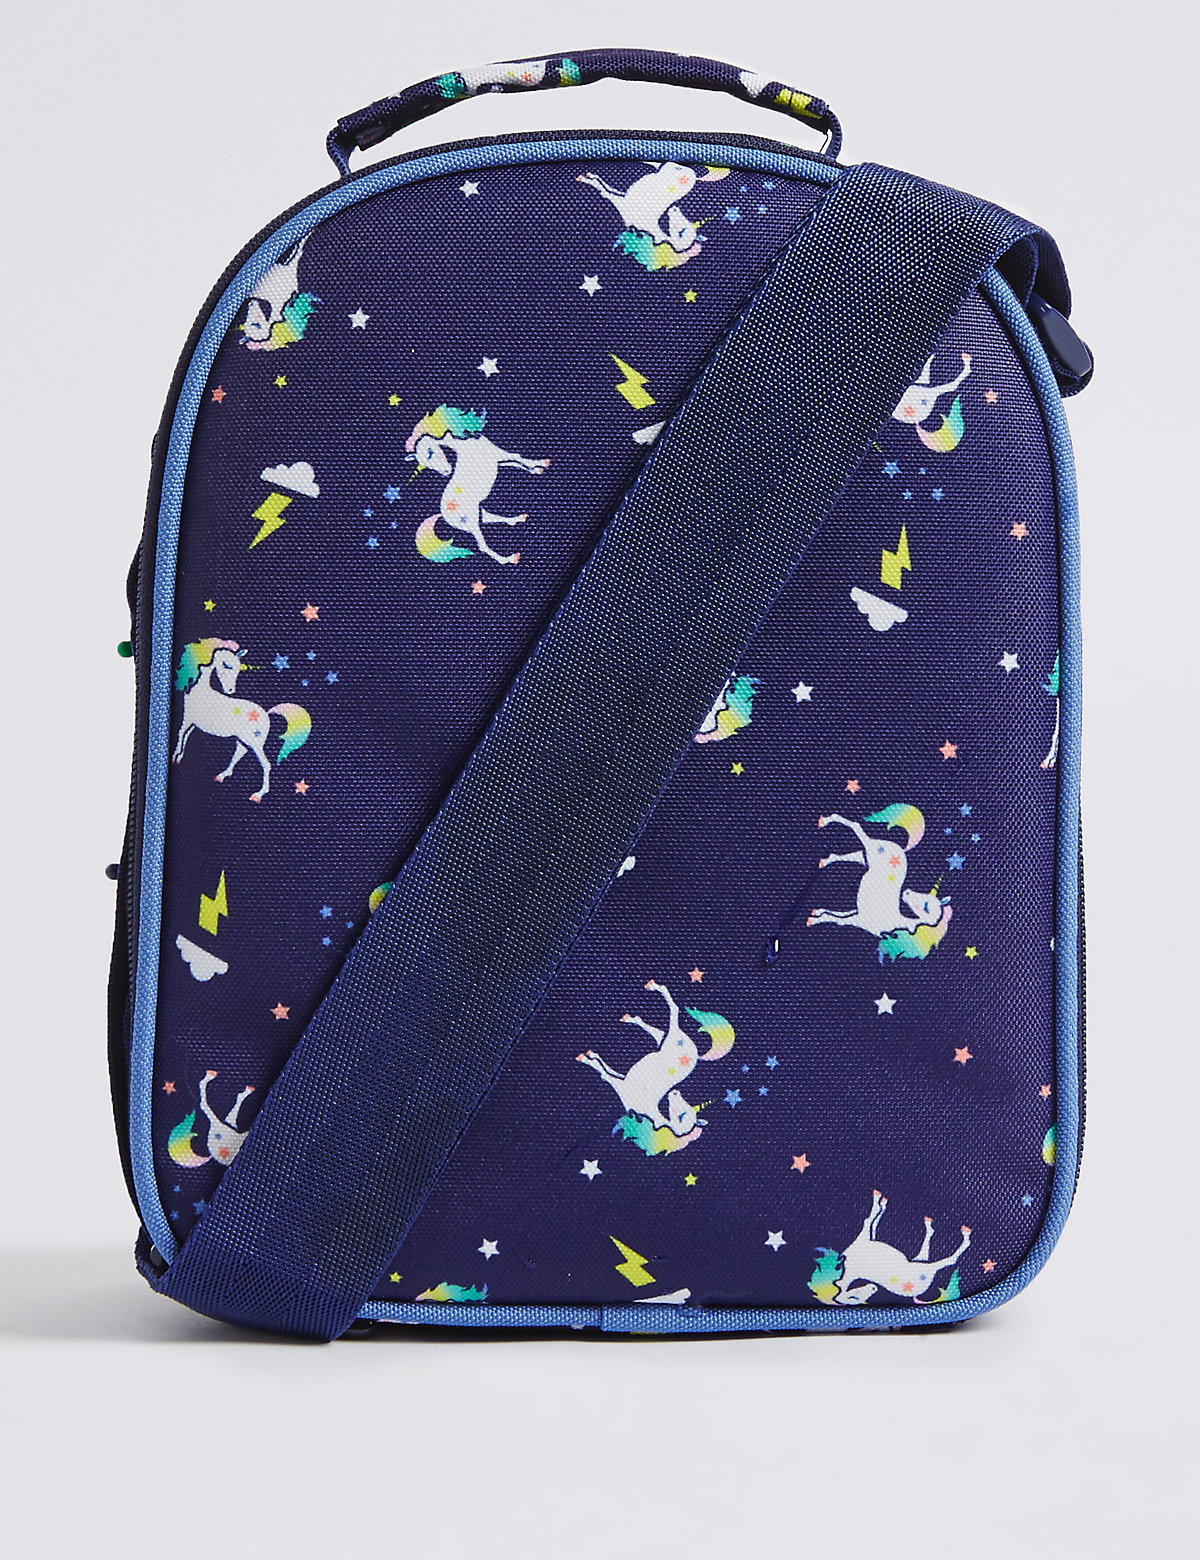 Kids Unicorn Lunch Box With Thinsulatetrade